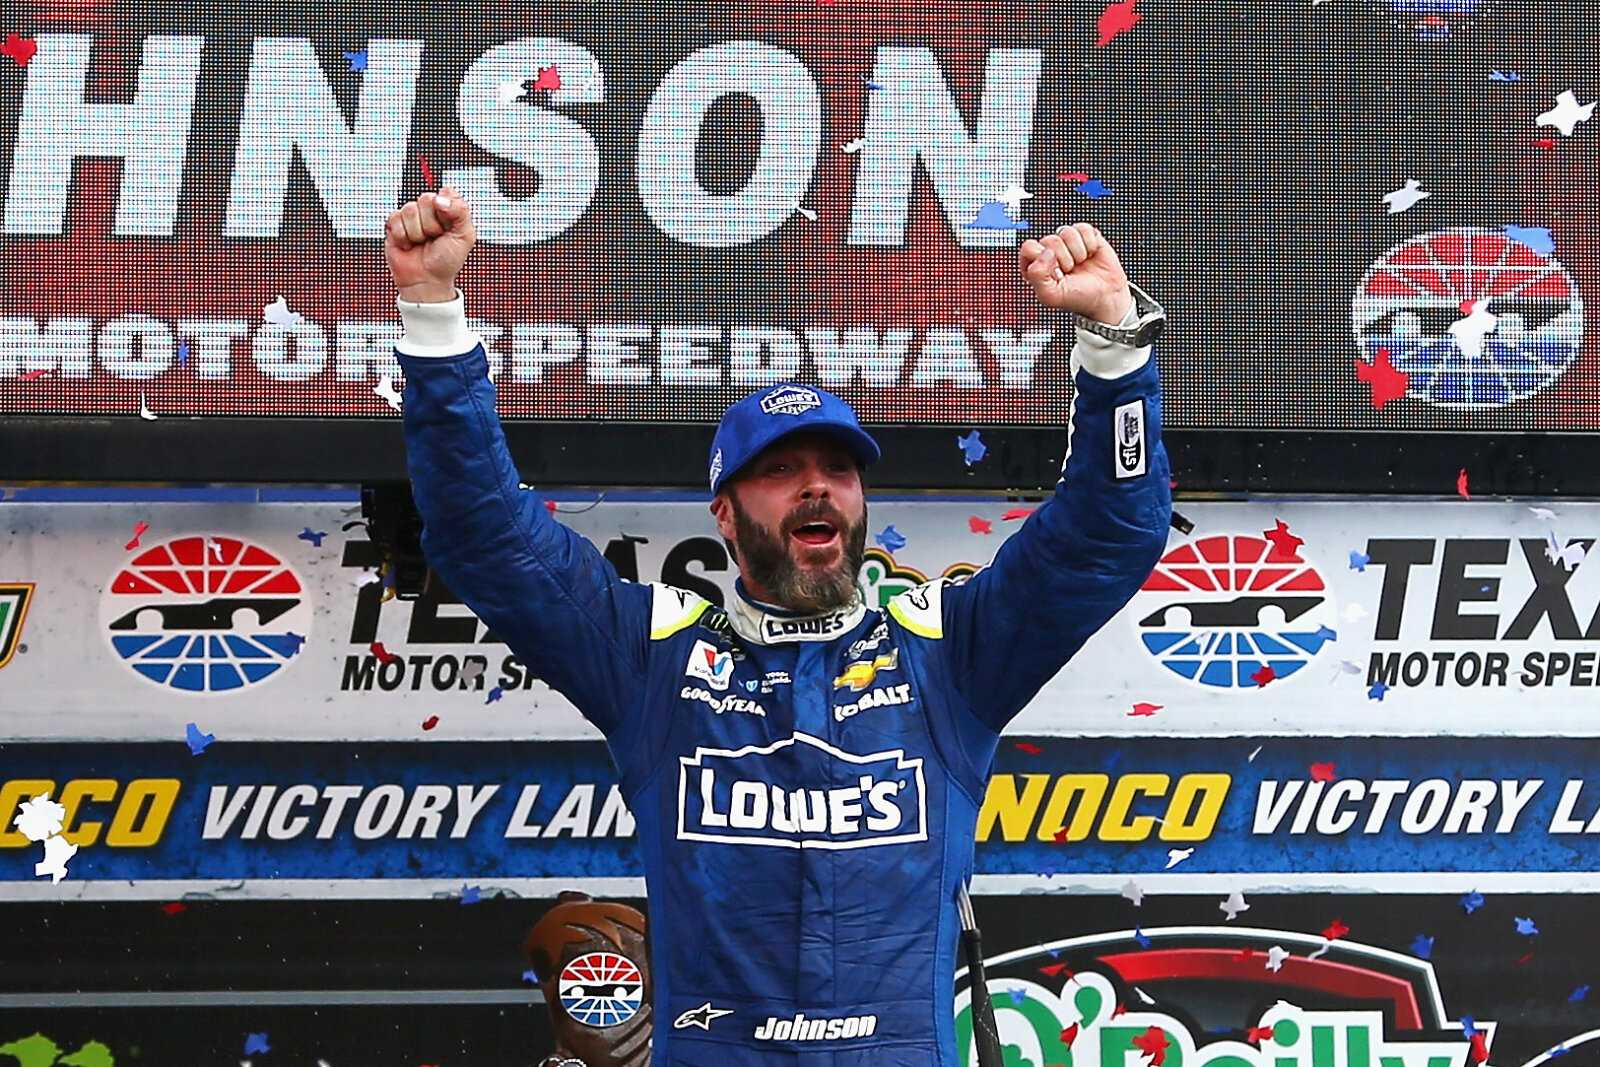 Jimmie Johnson fait-il déjà partie de la classe NASCAR Hall of Fame?